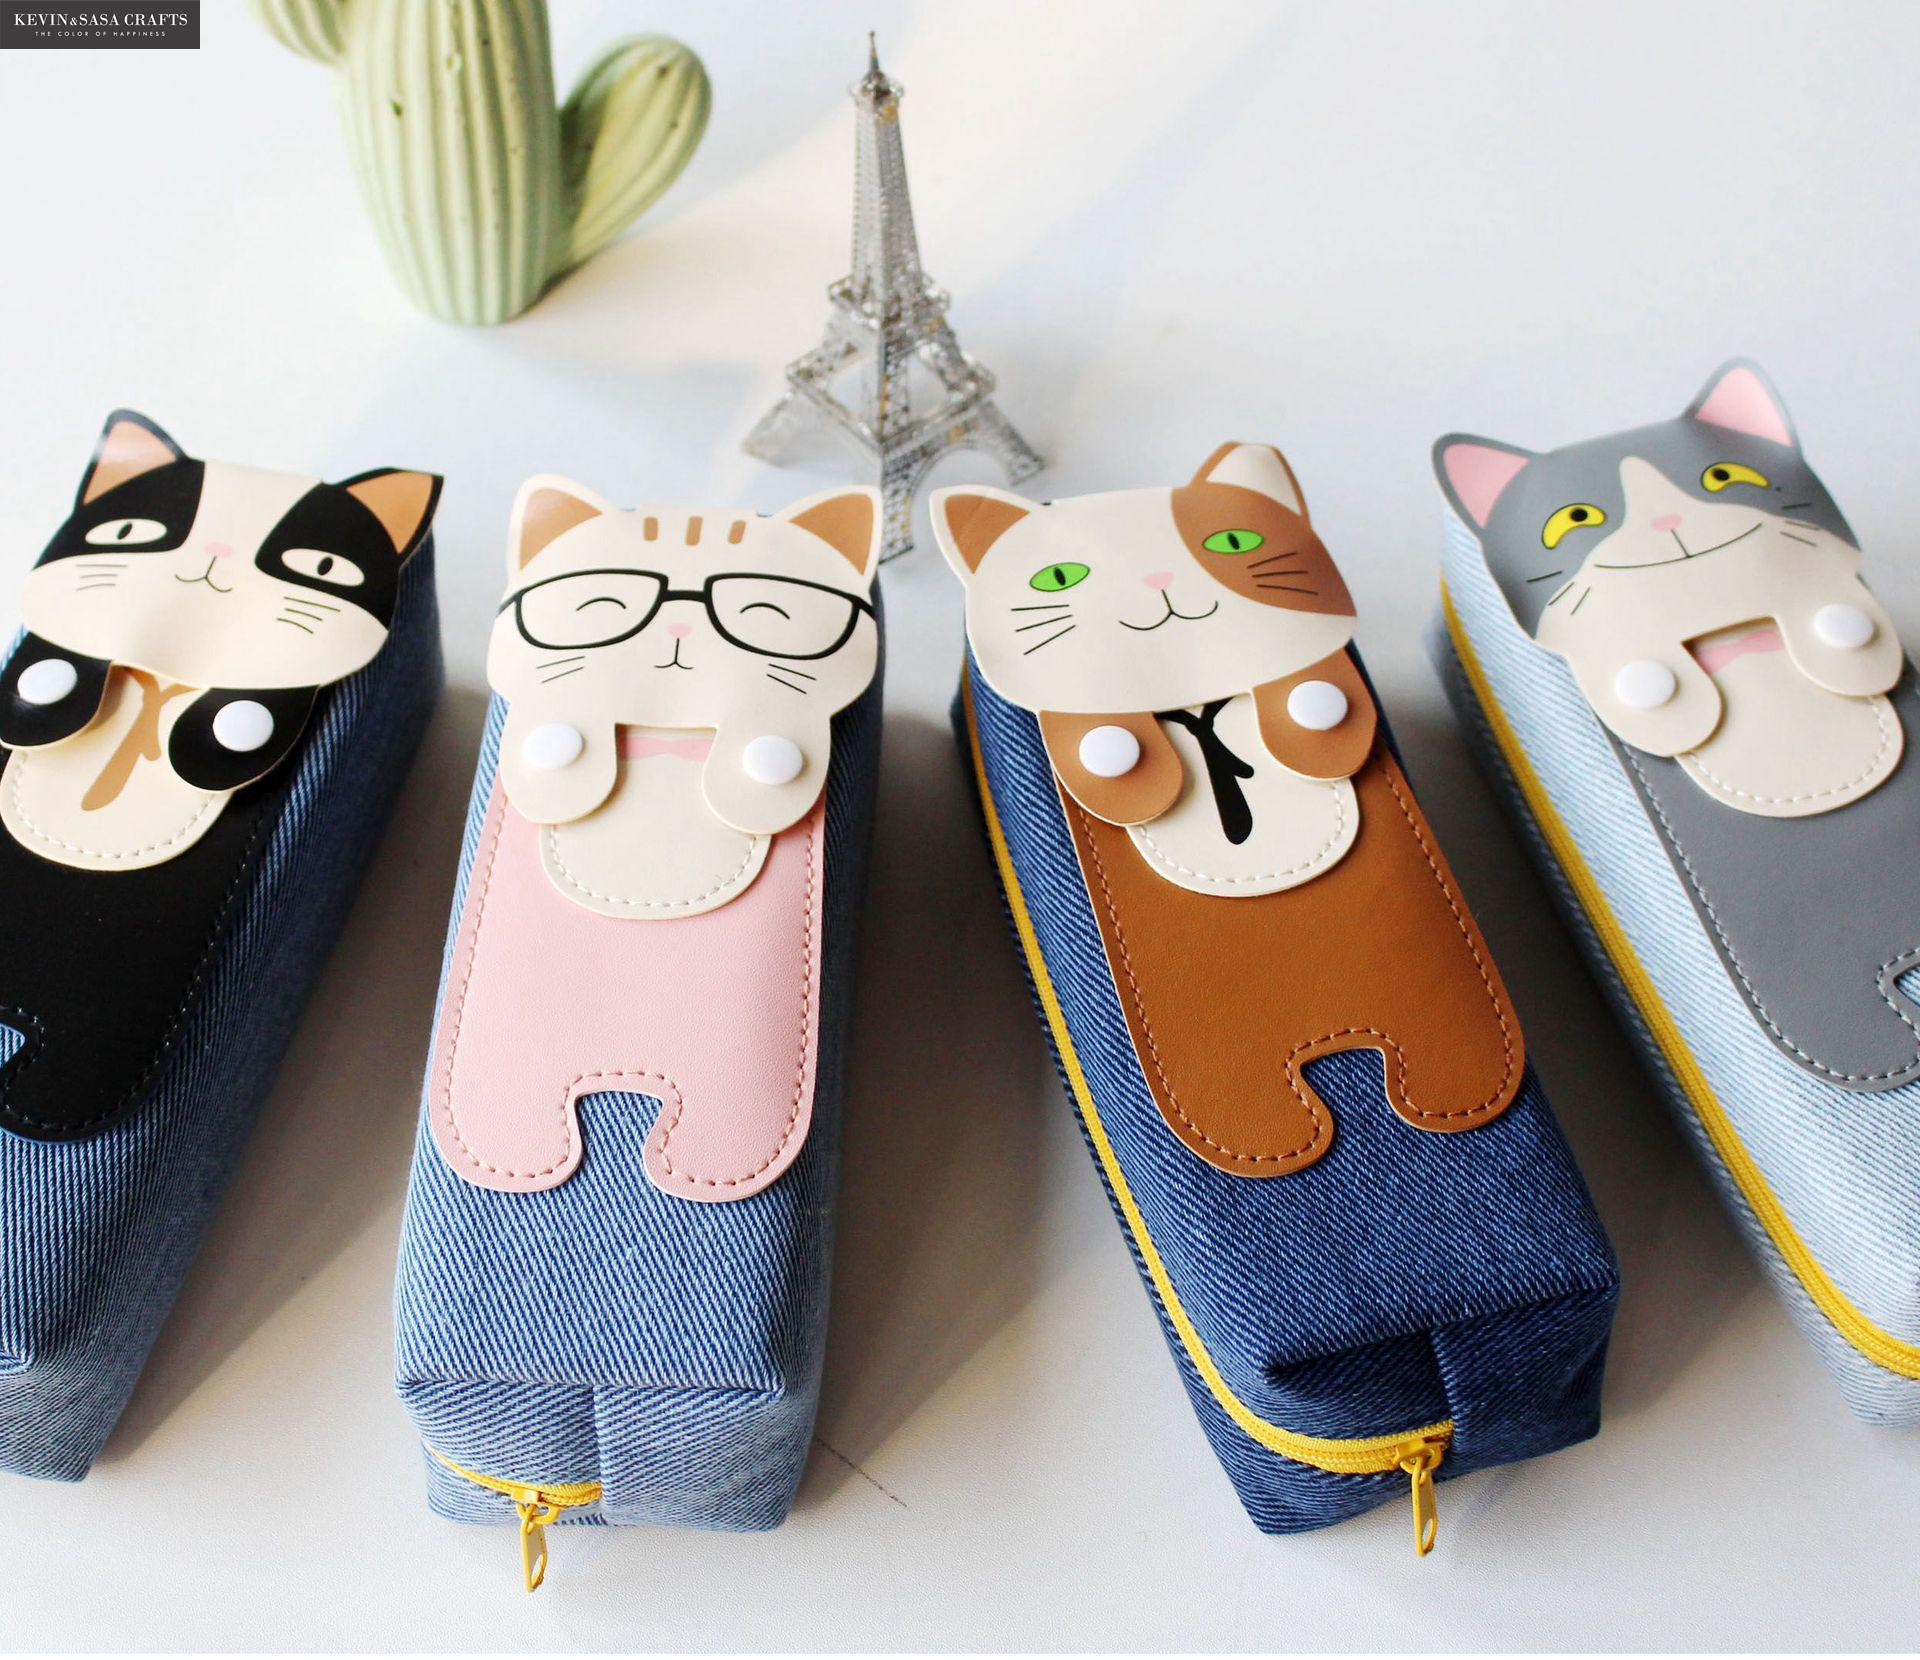 Cat Pencil Case Quality Fabric School Supplies Bts Stationery Gift Pencilcase School Cute Pencil Box School Tools Pencil Bag loz ideas diamond block cat white cute pencil case stationery storage box pixel building toy diy gift student supplies 9096 2